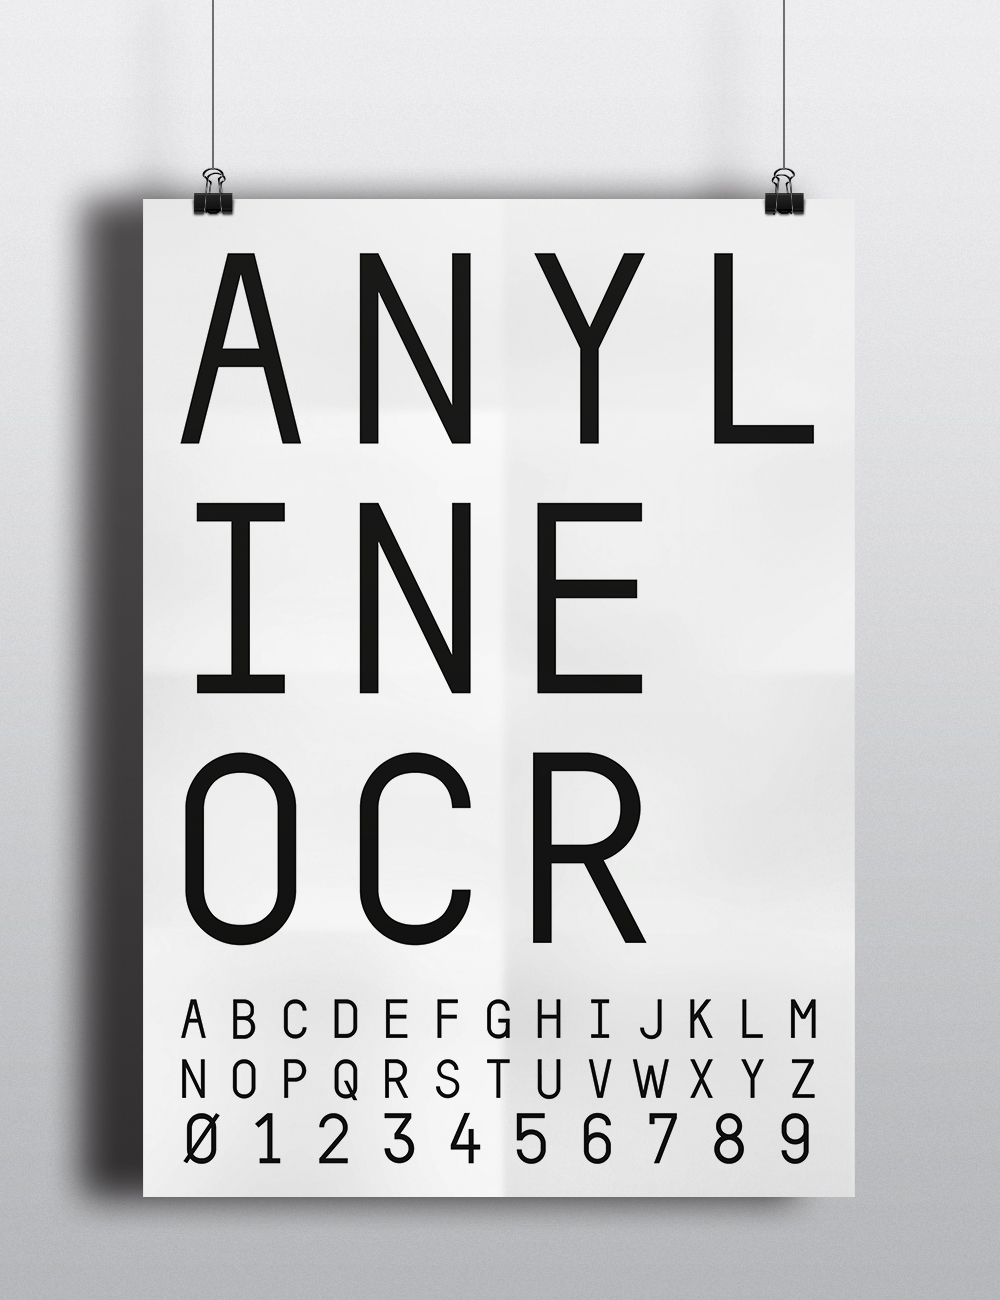 Anyline OCR